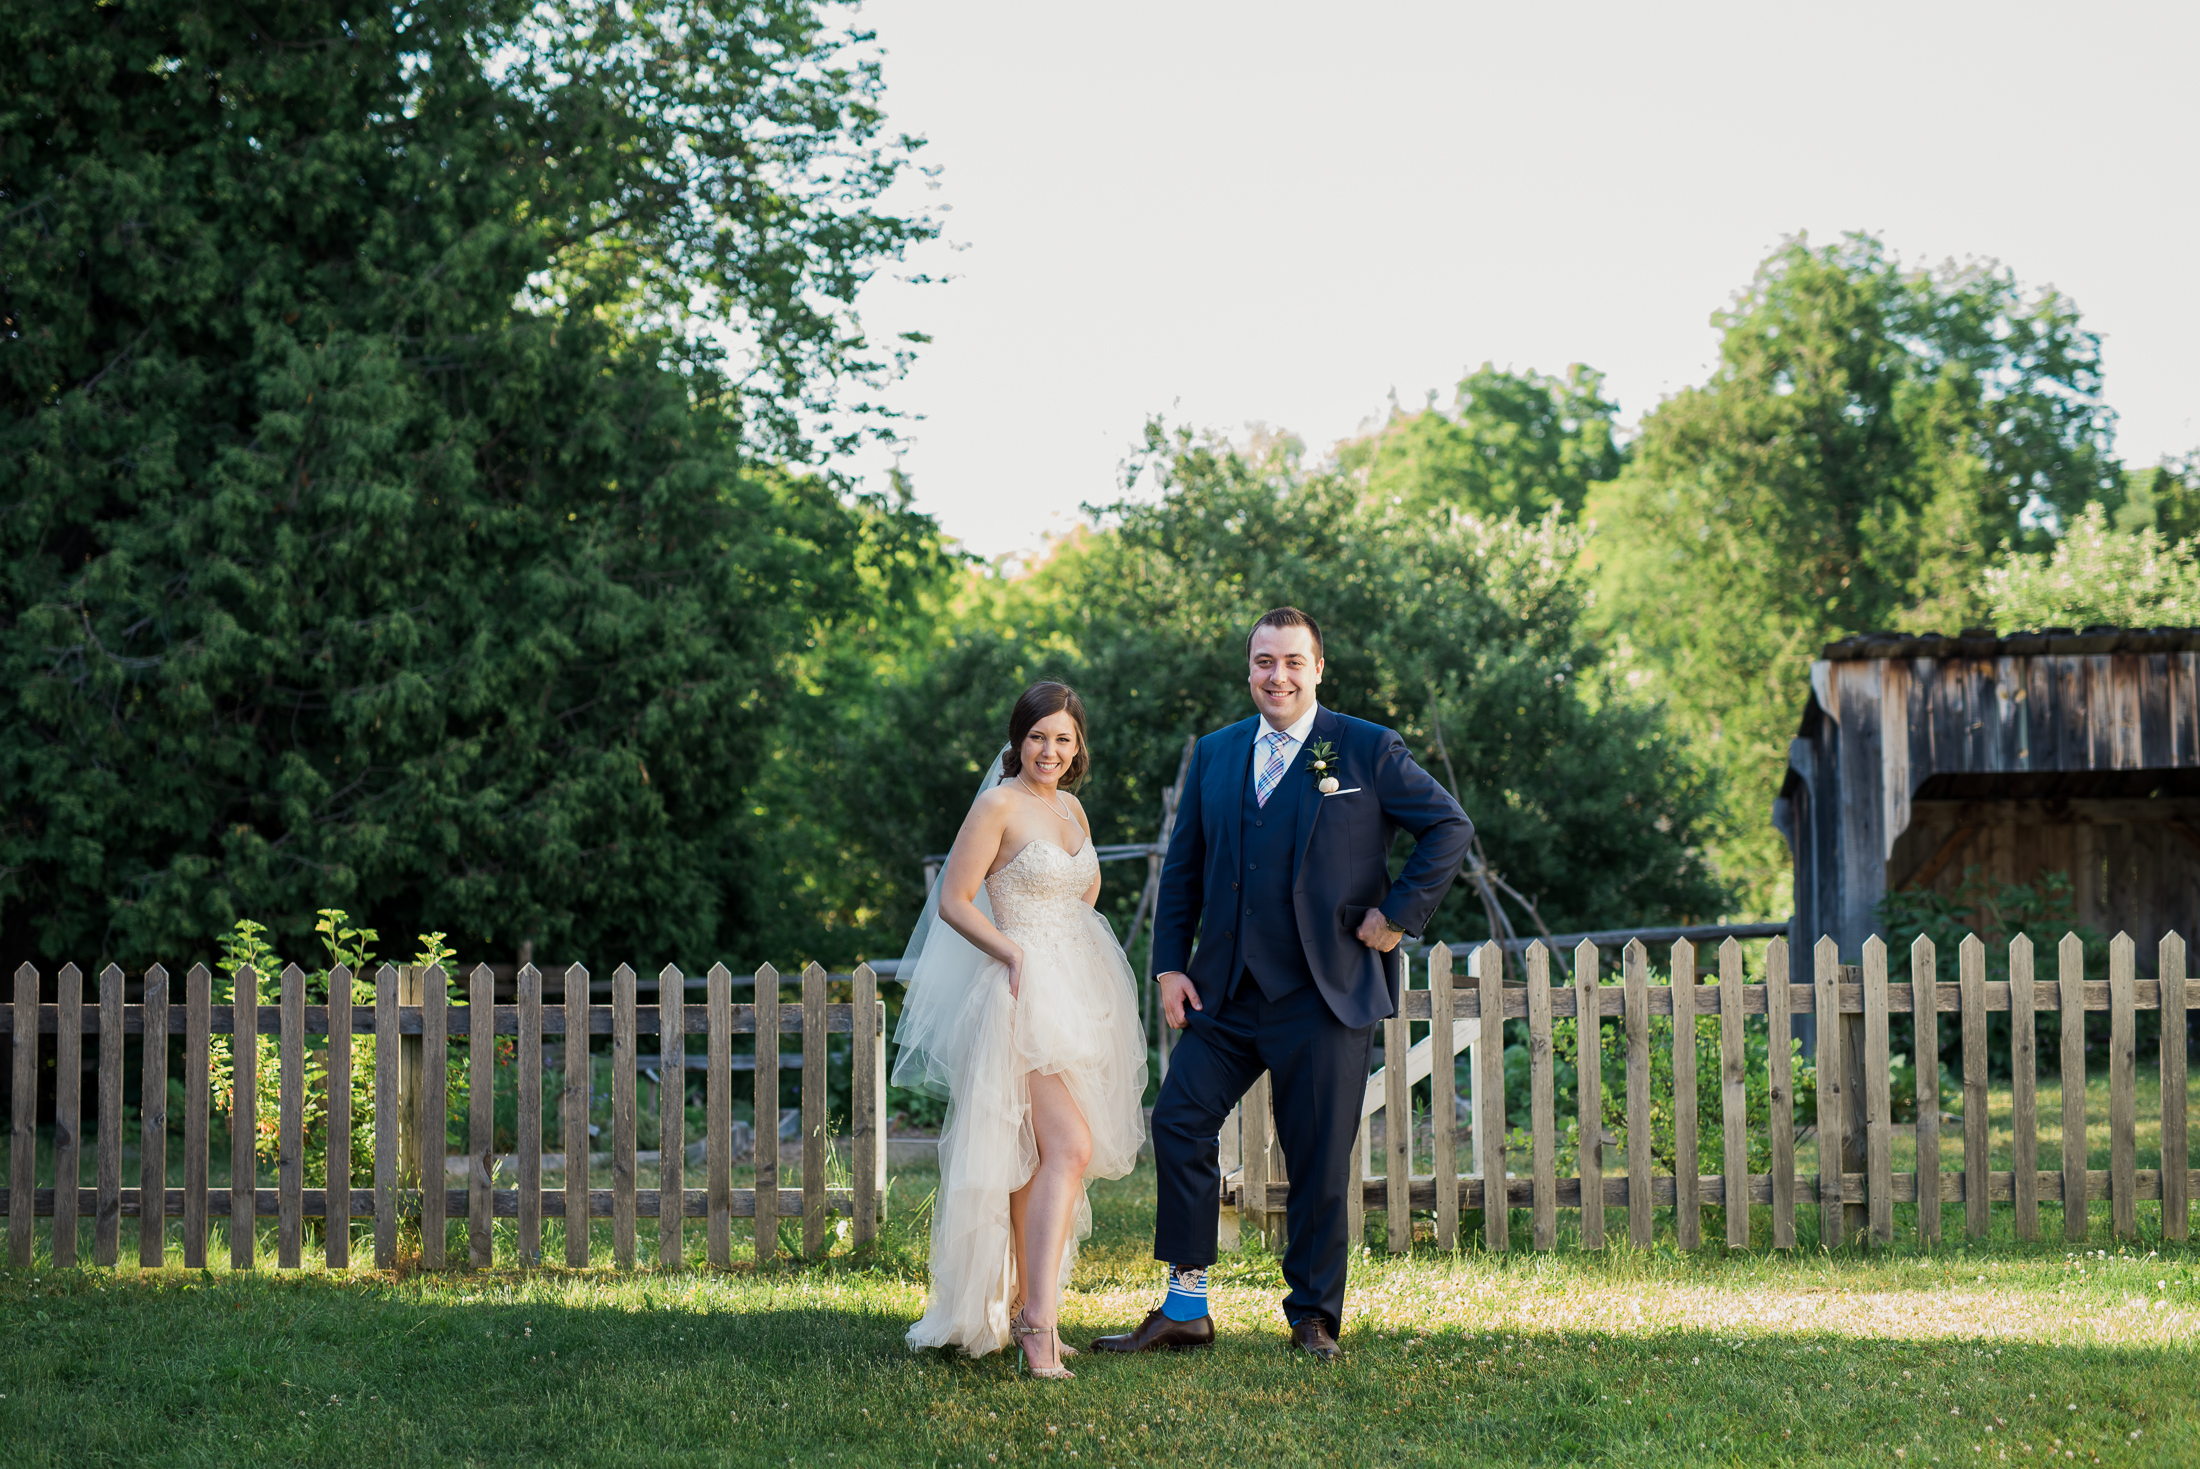 pickering_lakehouse_wedding_durham_region160